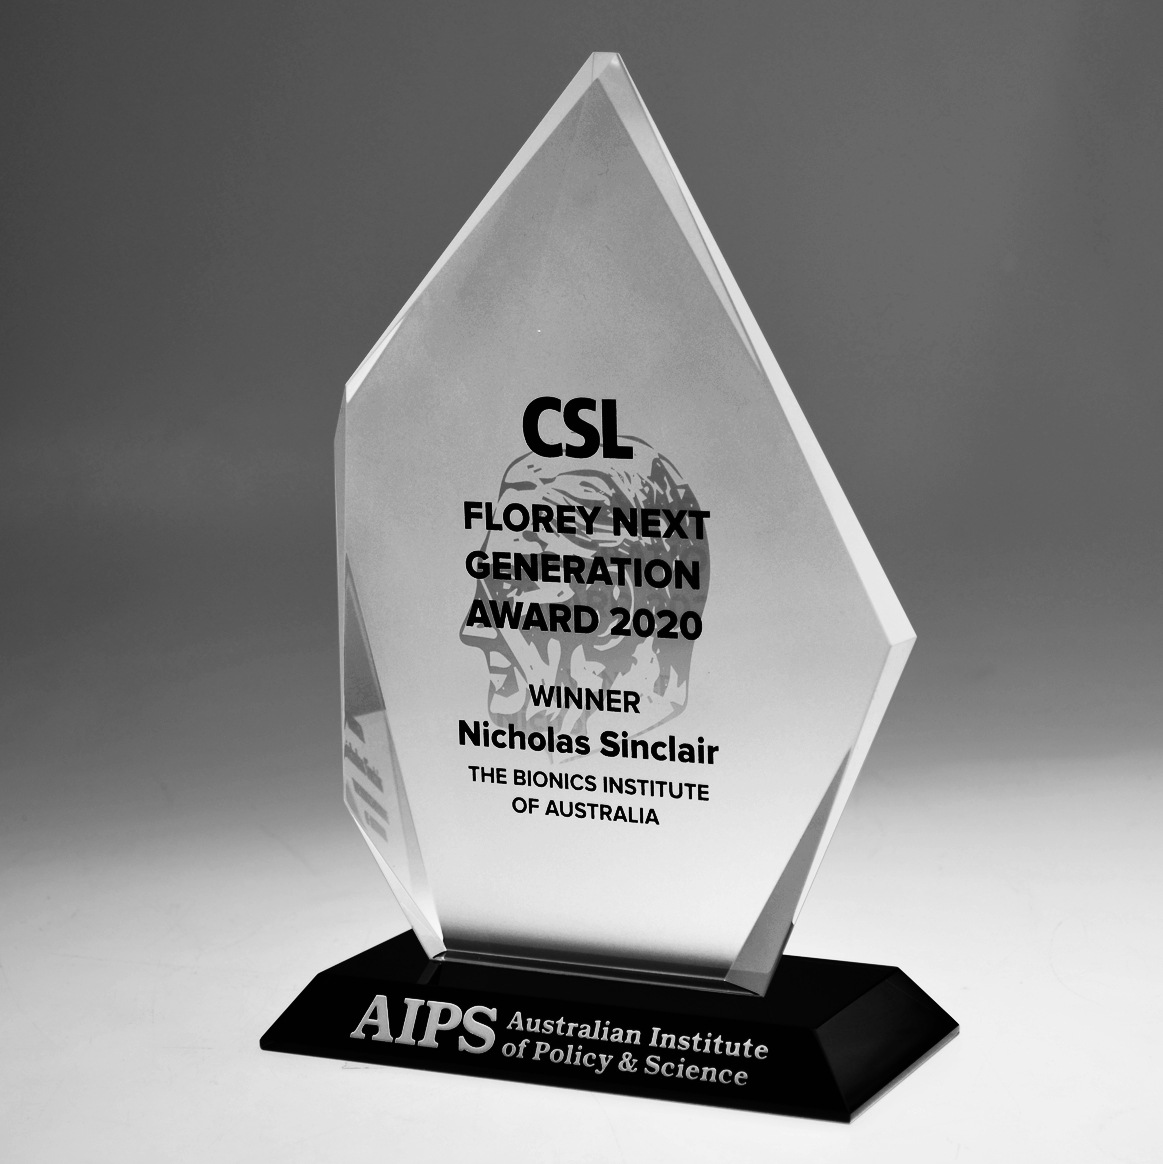 AIPS Crystal Award by Mint Awards